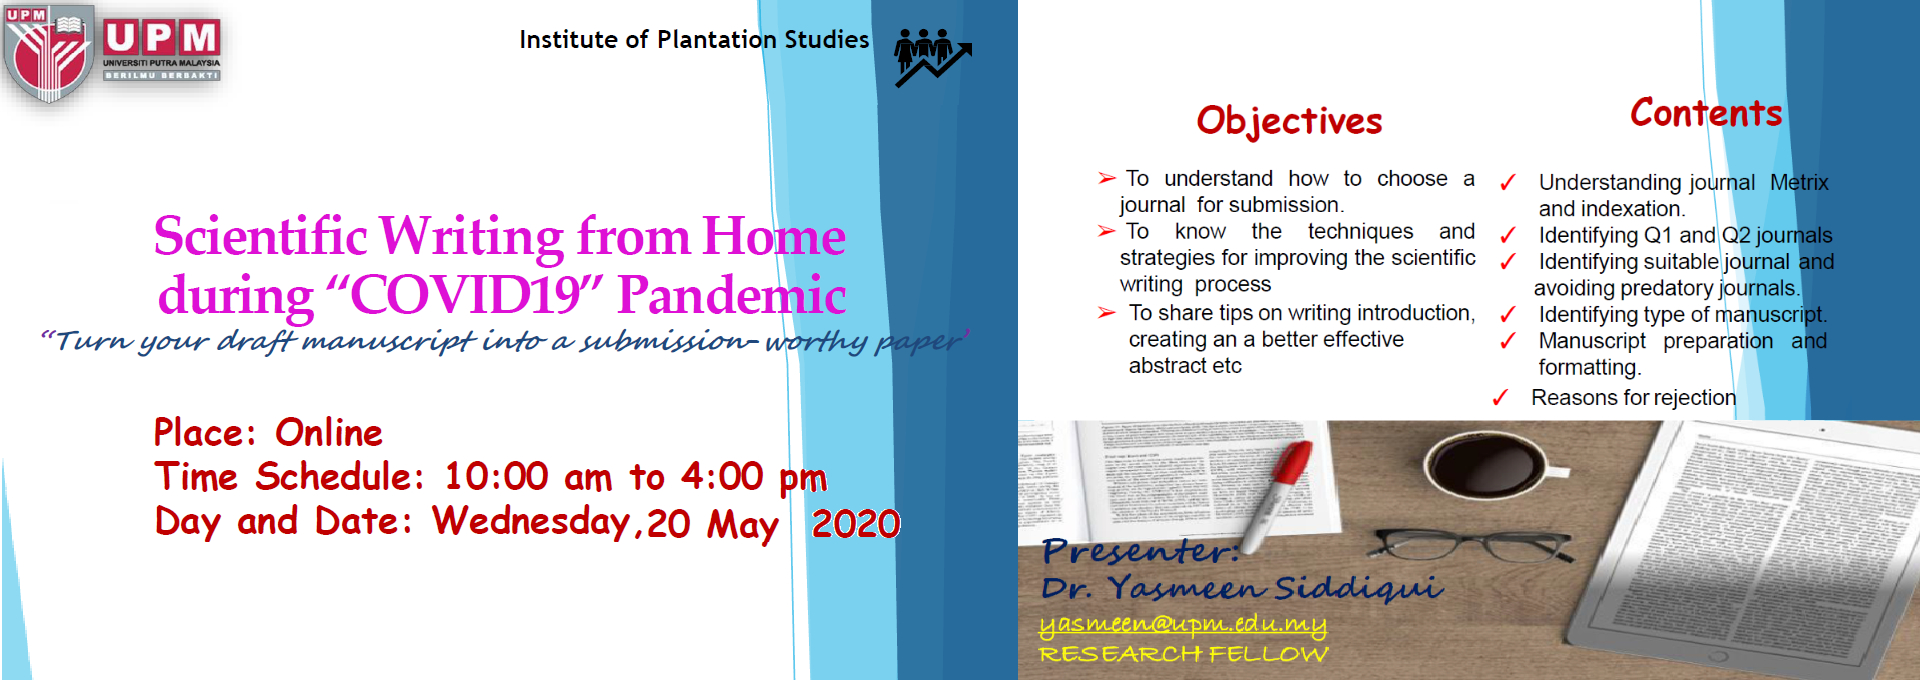 Scientific Writing from Home during 'COVID19' Pandemic